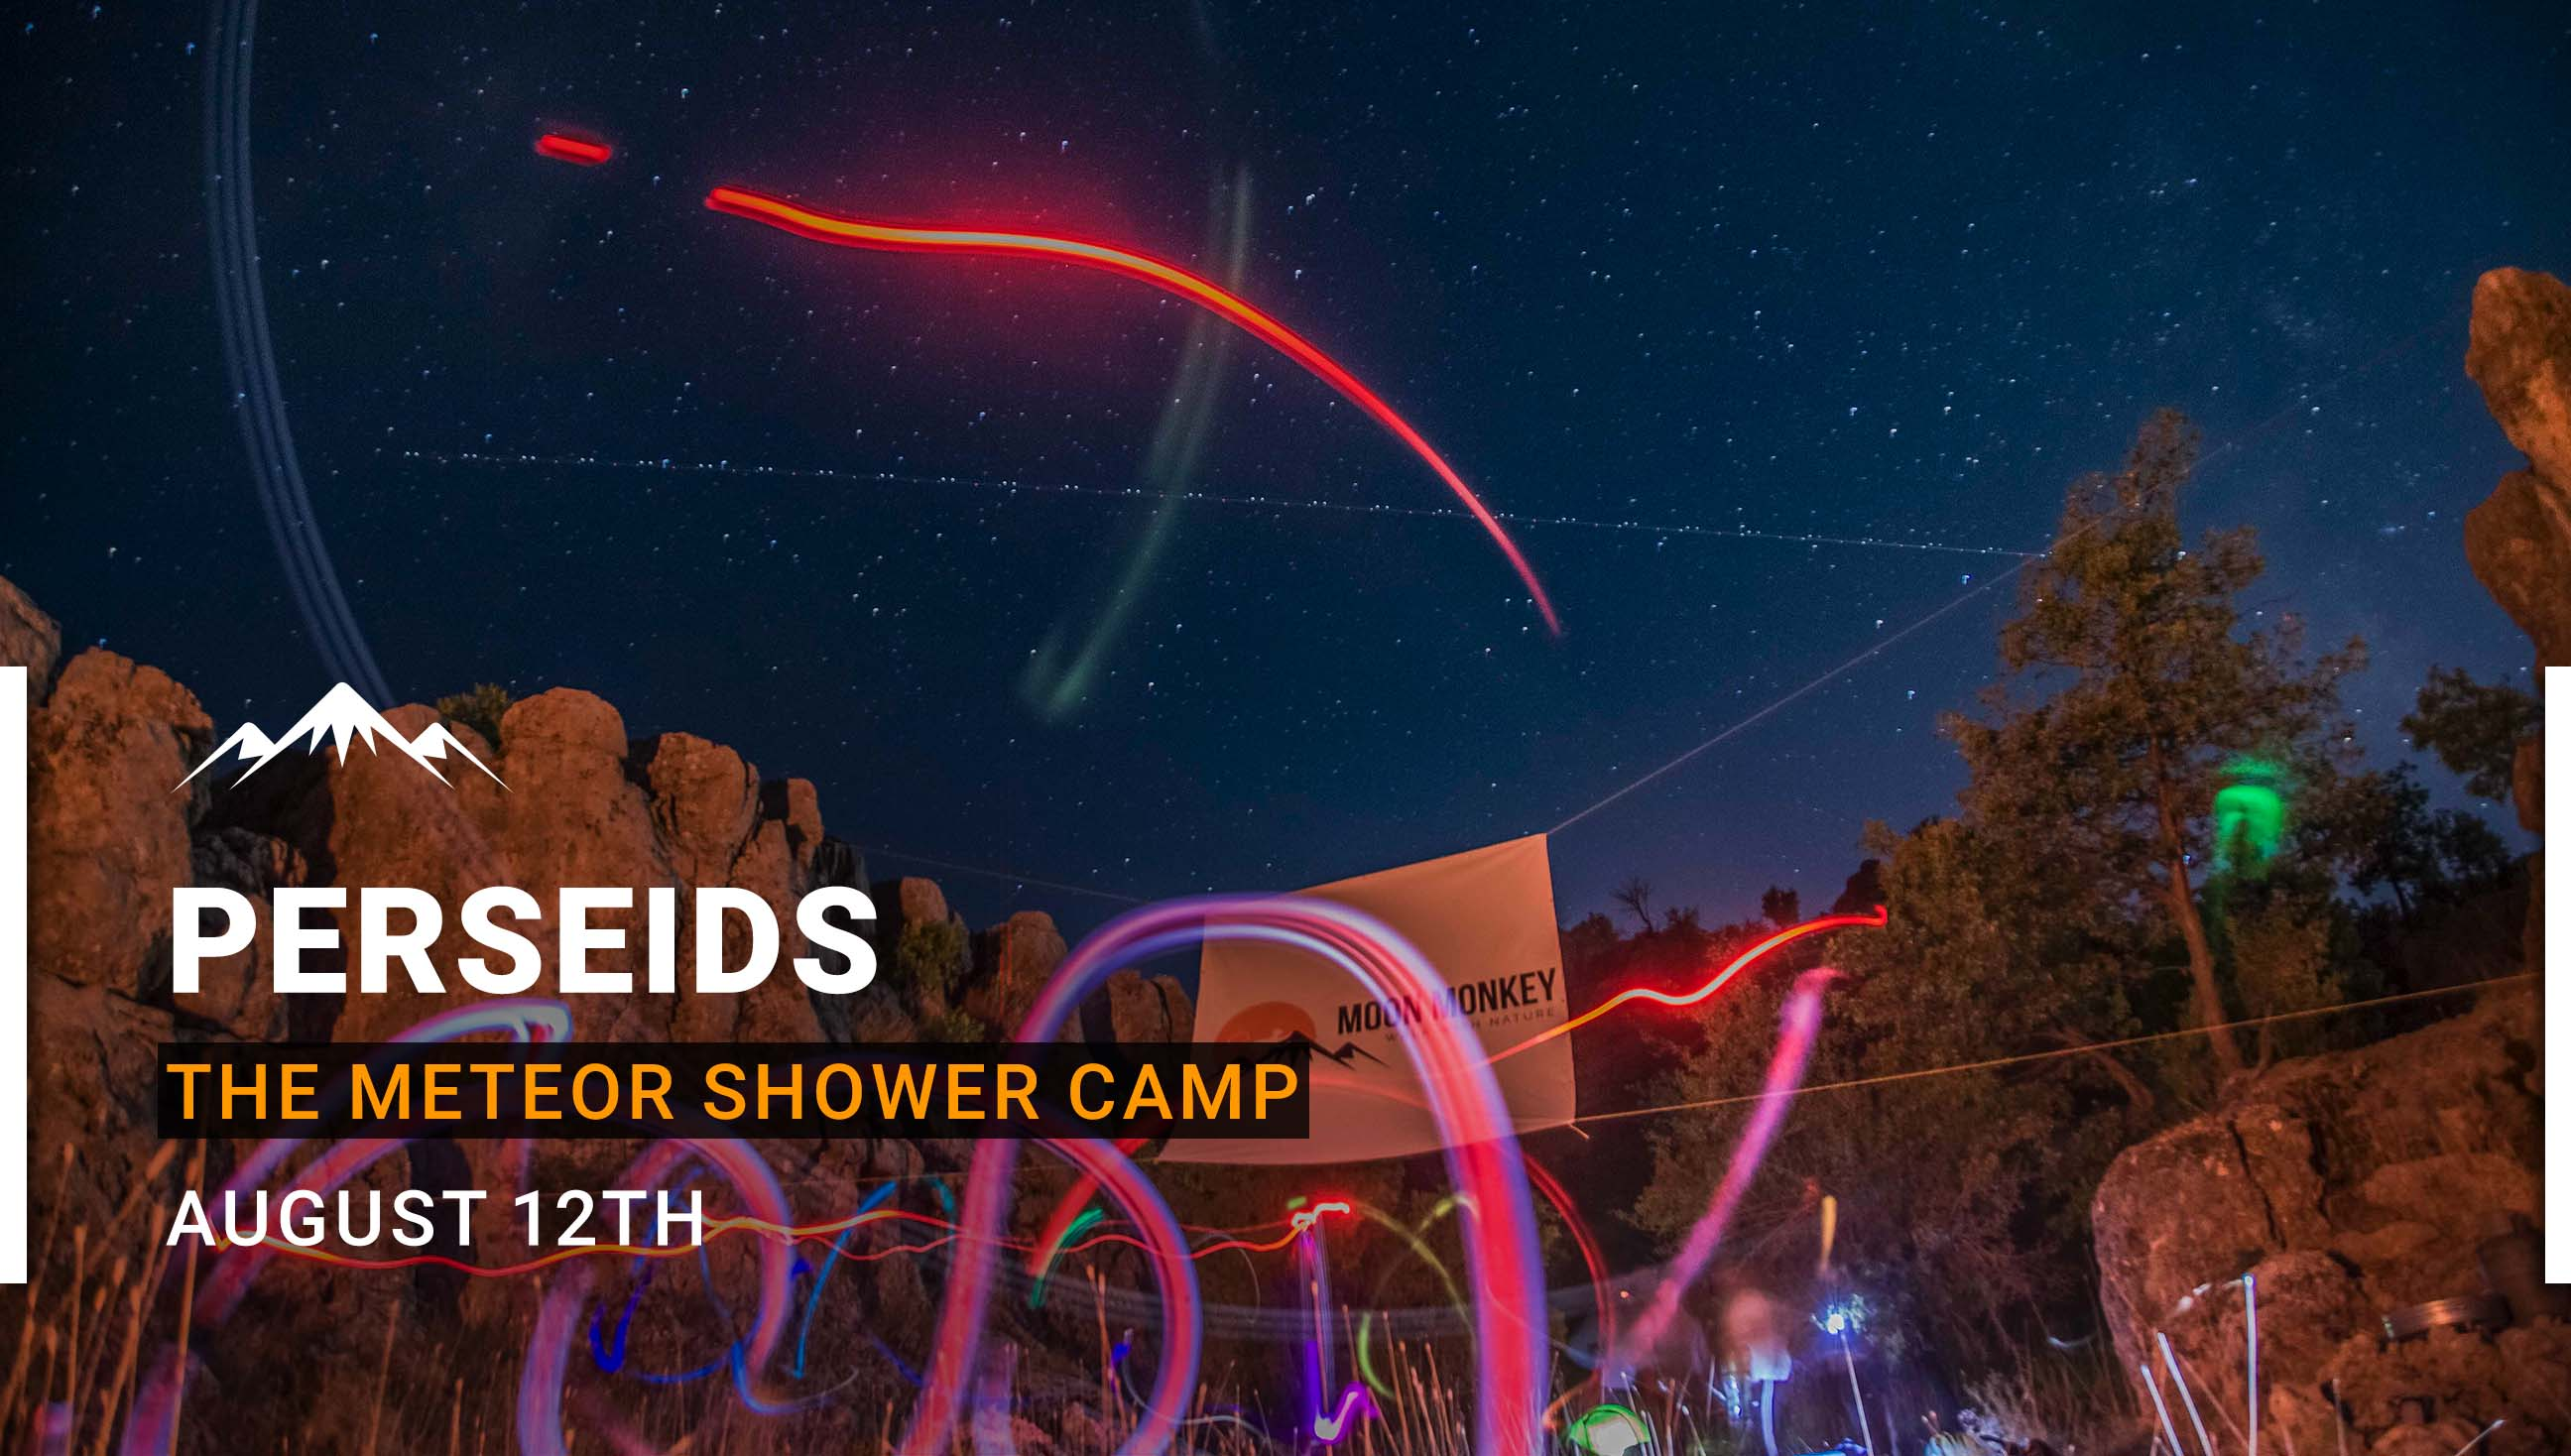 Perseids / The Meteor Shower Camp